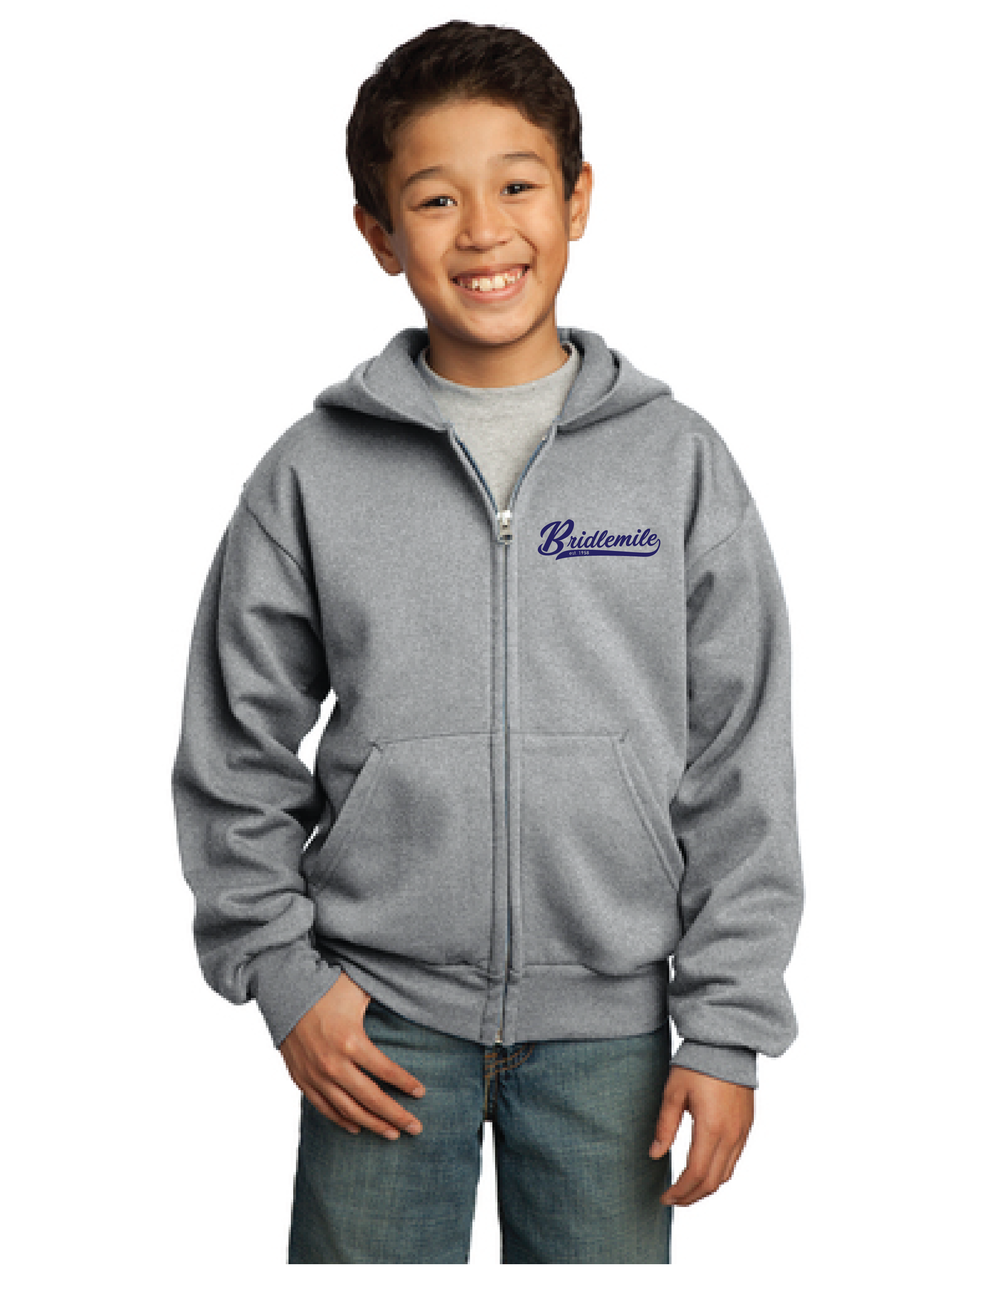 Bridlemile 60th Anniversary Designs_60th Embroidered Zip Hoodie Youth.png